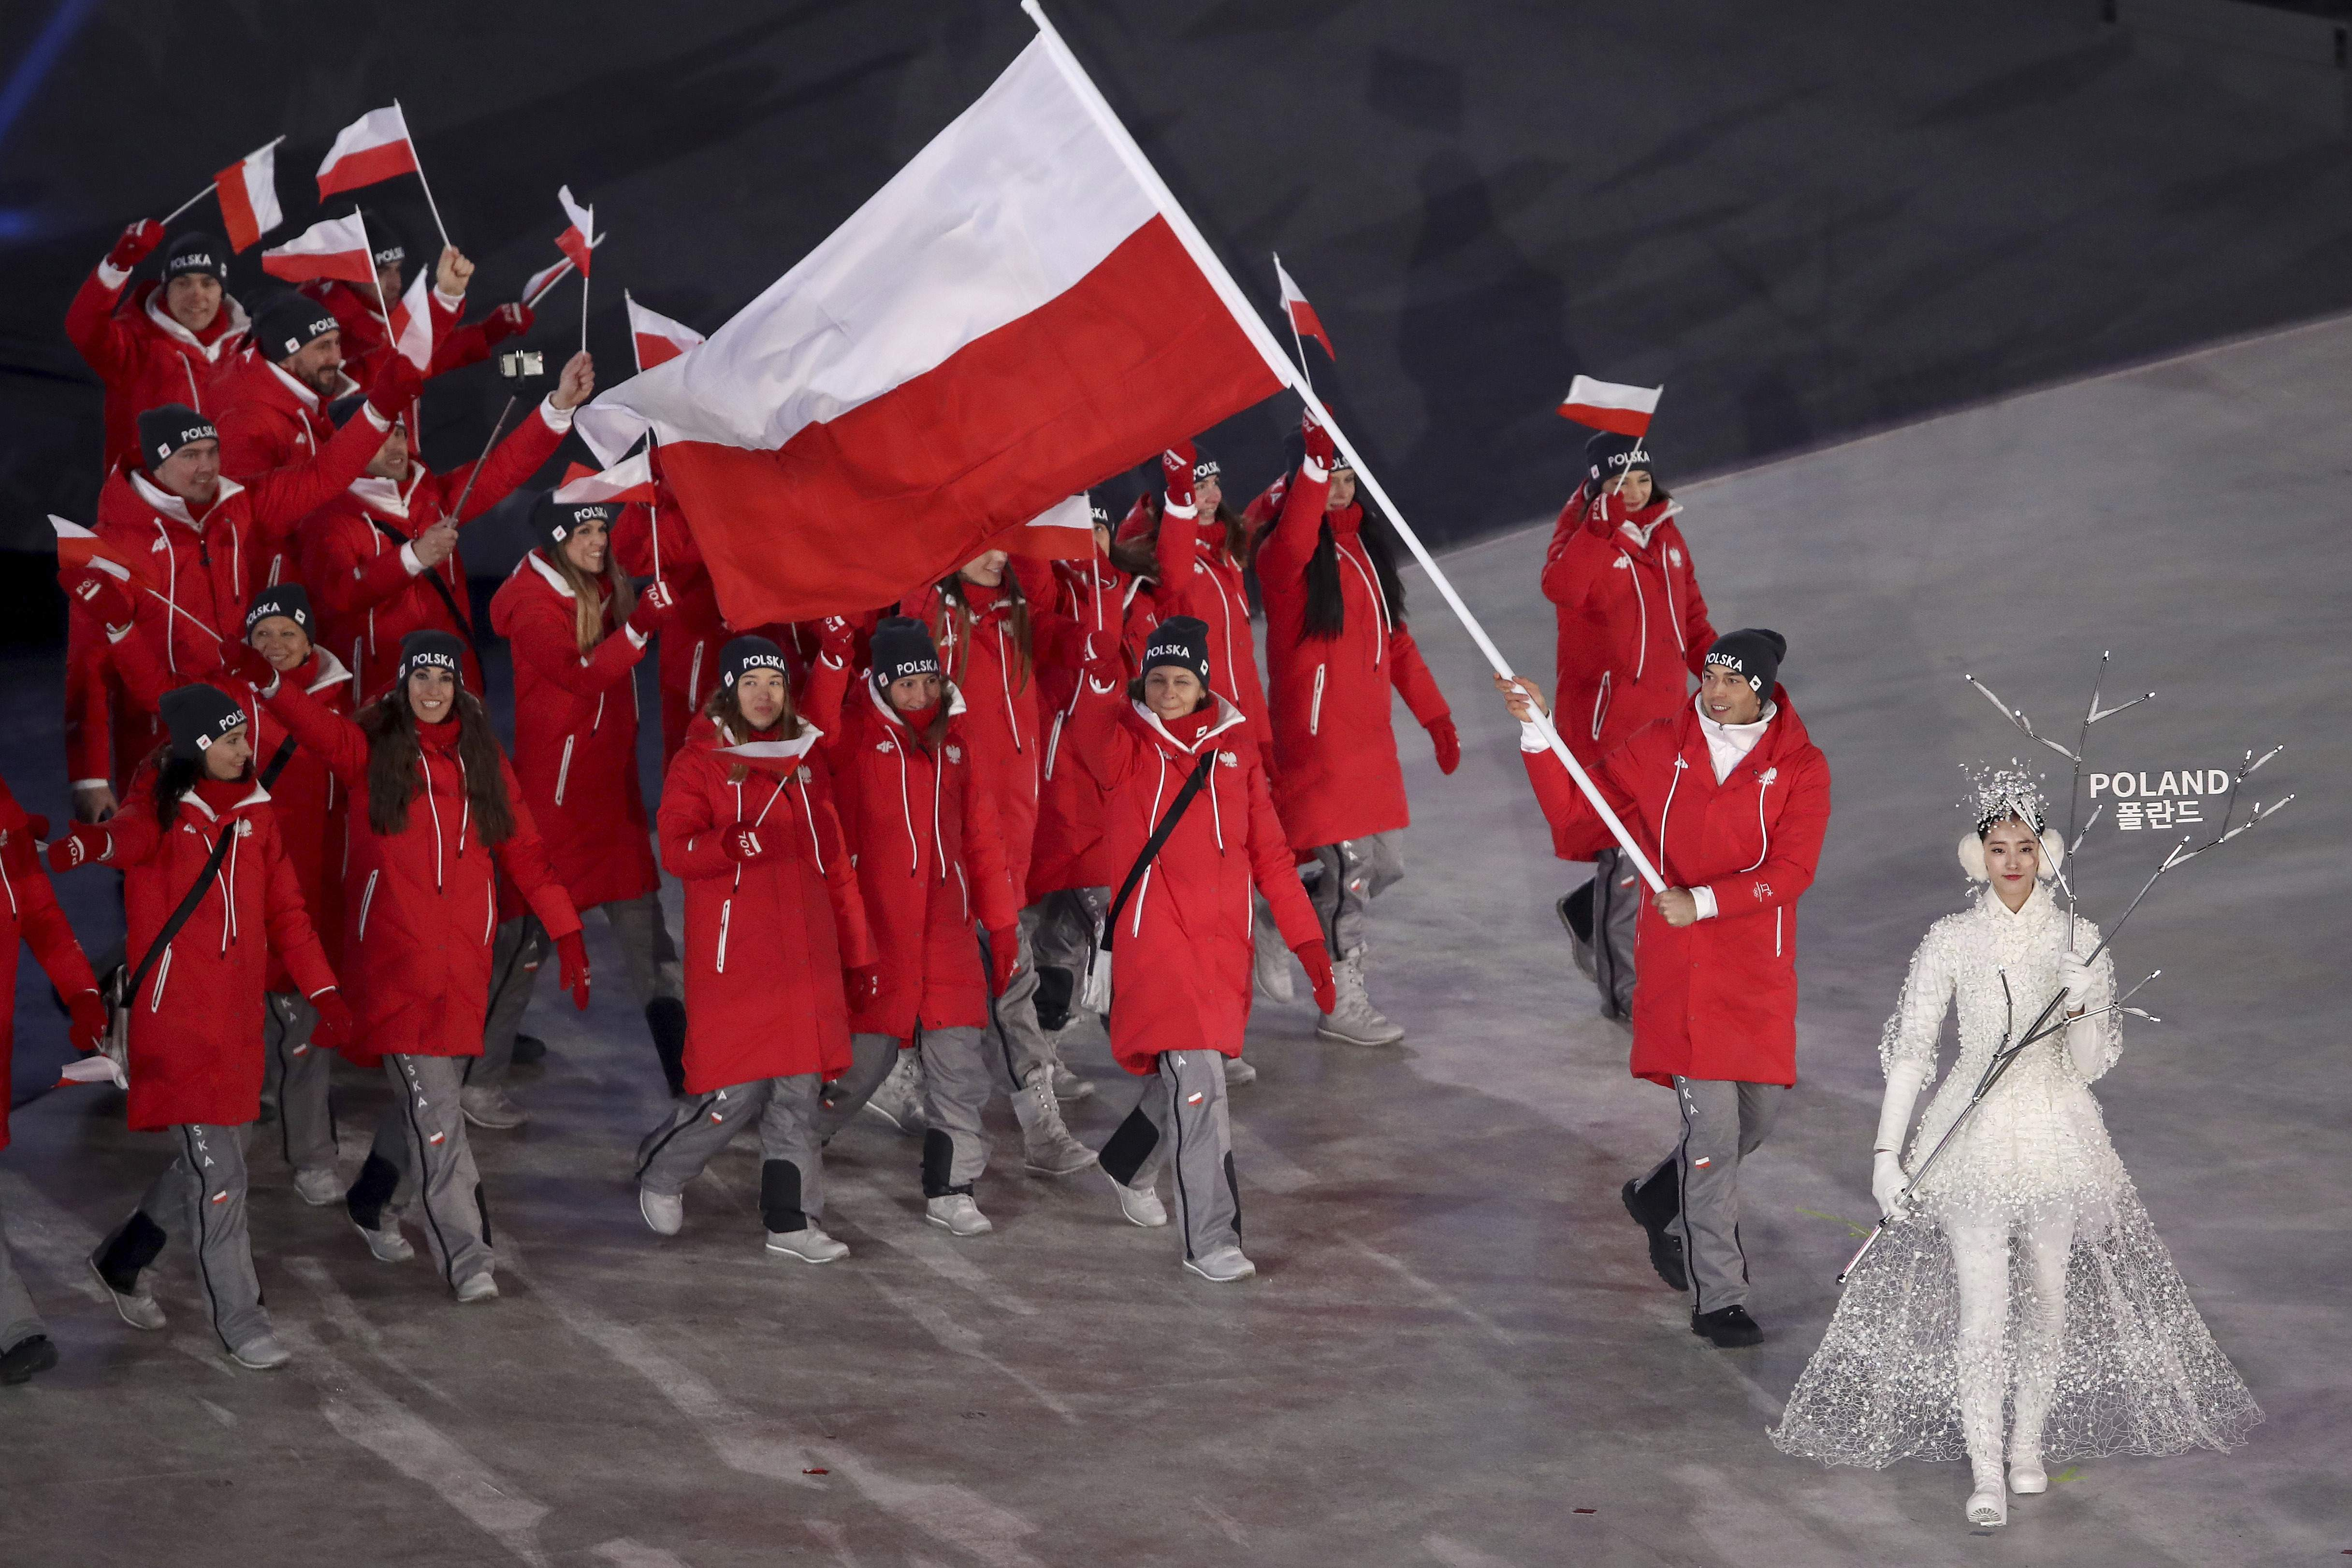 Kequyen Lam carries the flag of Poland during the opening ceremony of the 2018 Winter Olympics in Pyeongchang, South Korea, Friday, Feb. 9, 2018. (Sean Haffey/Pool Photo via AP)